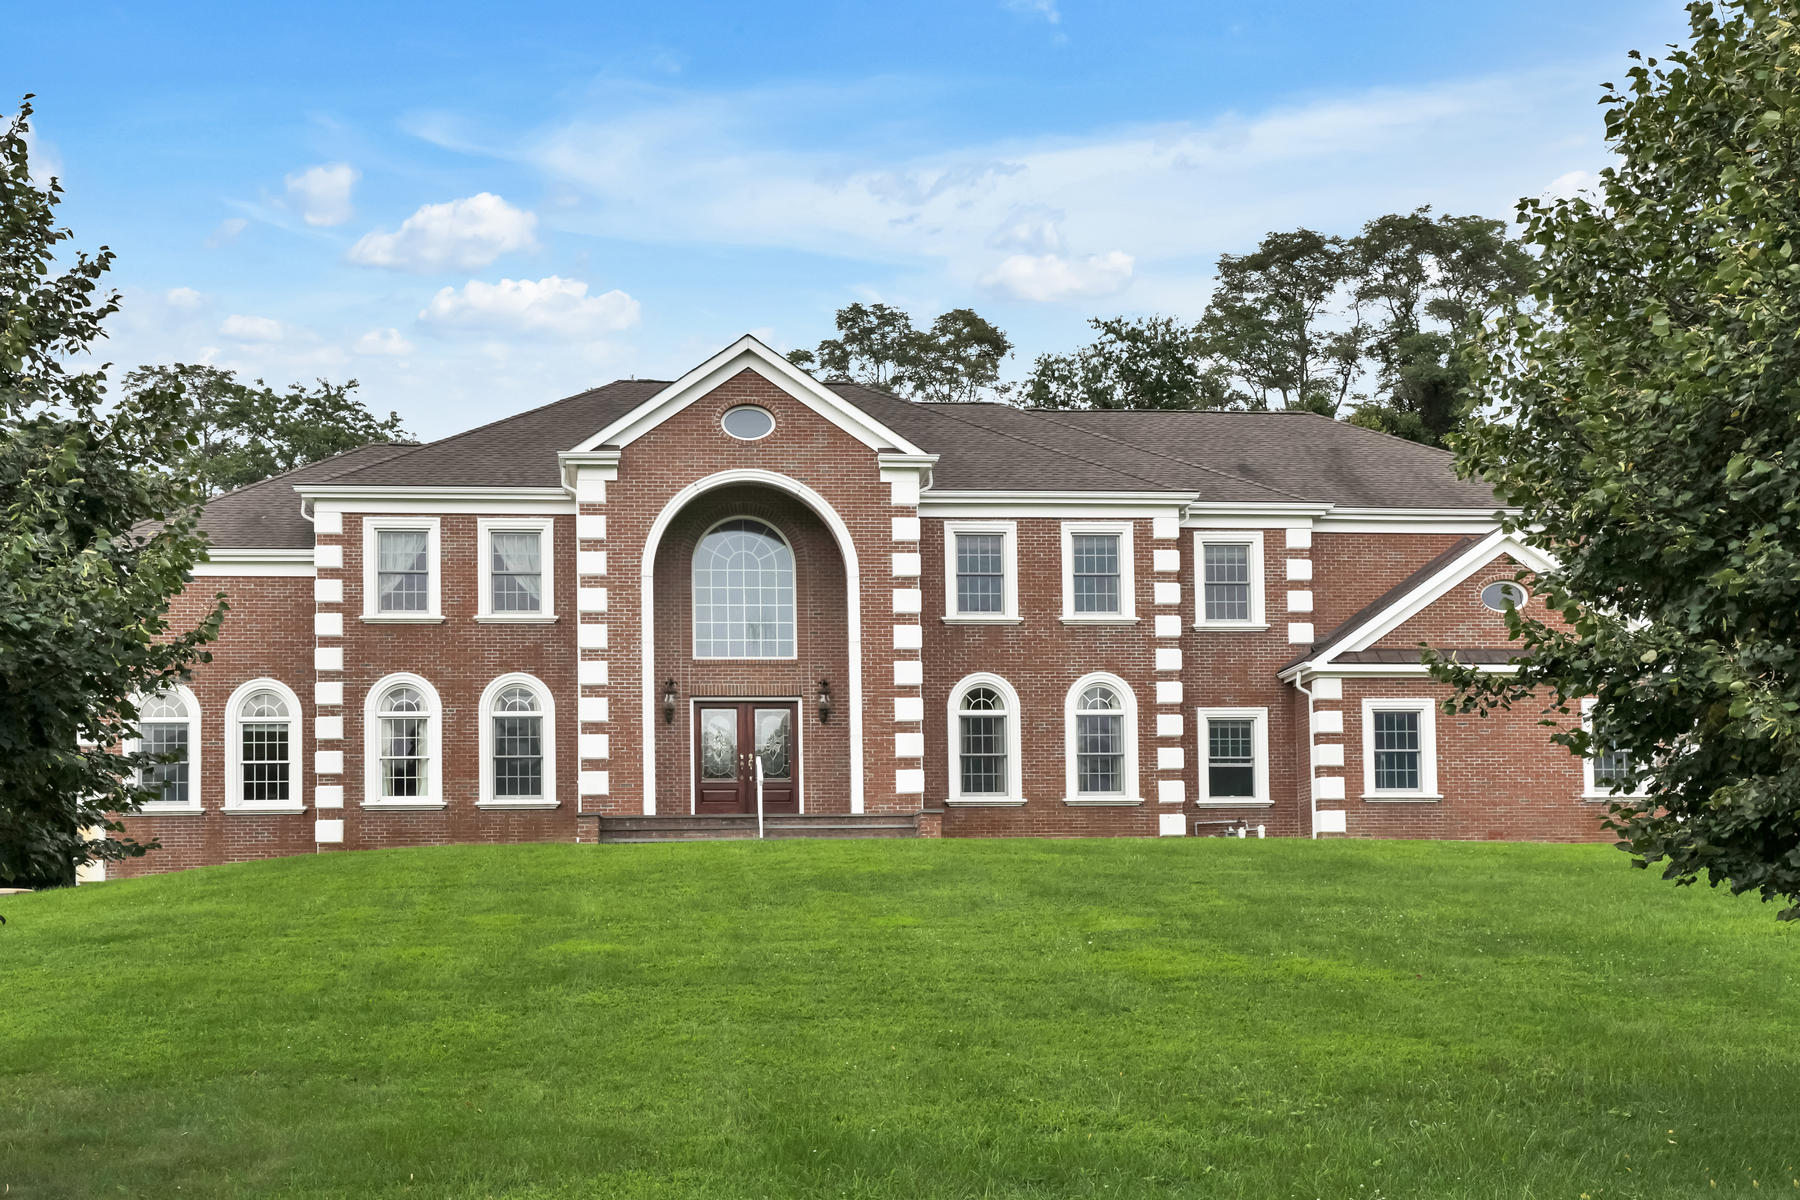 Single Family Homes for Active at Gracious and Elegant Custom Colonial 1 Pennyroyal Court Colts Neck, New Jersey 07722 United States